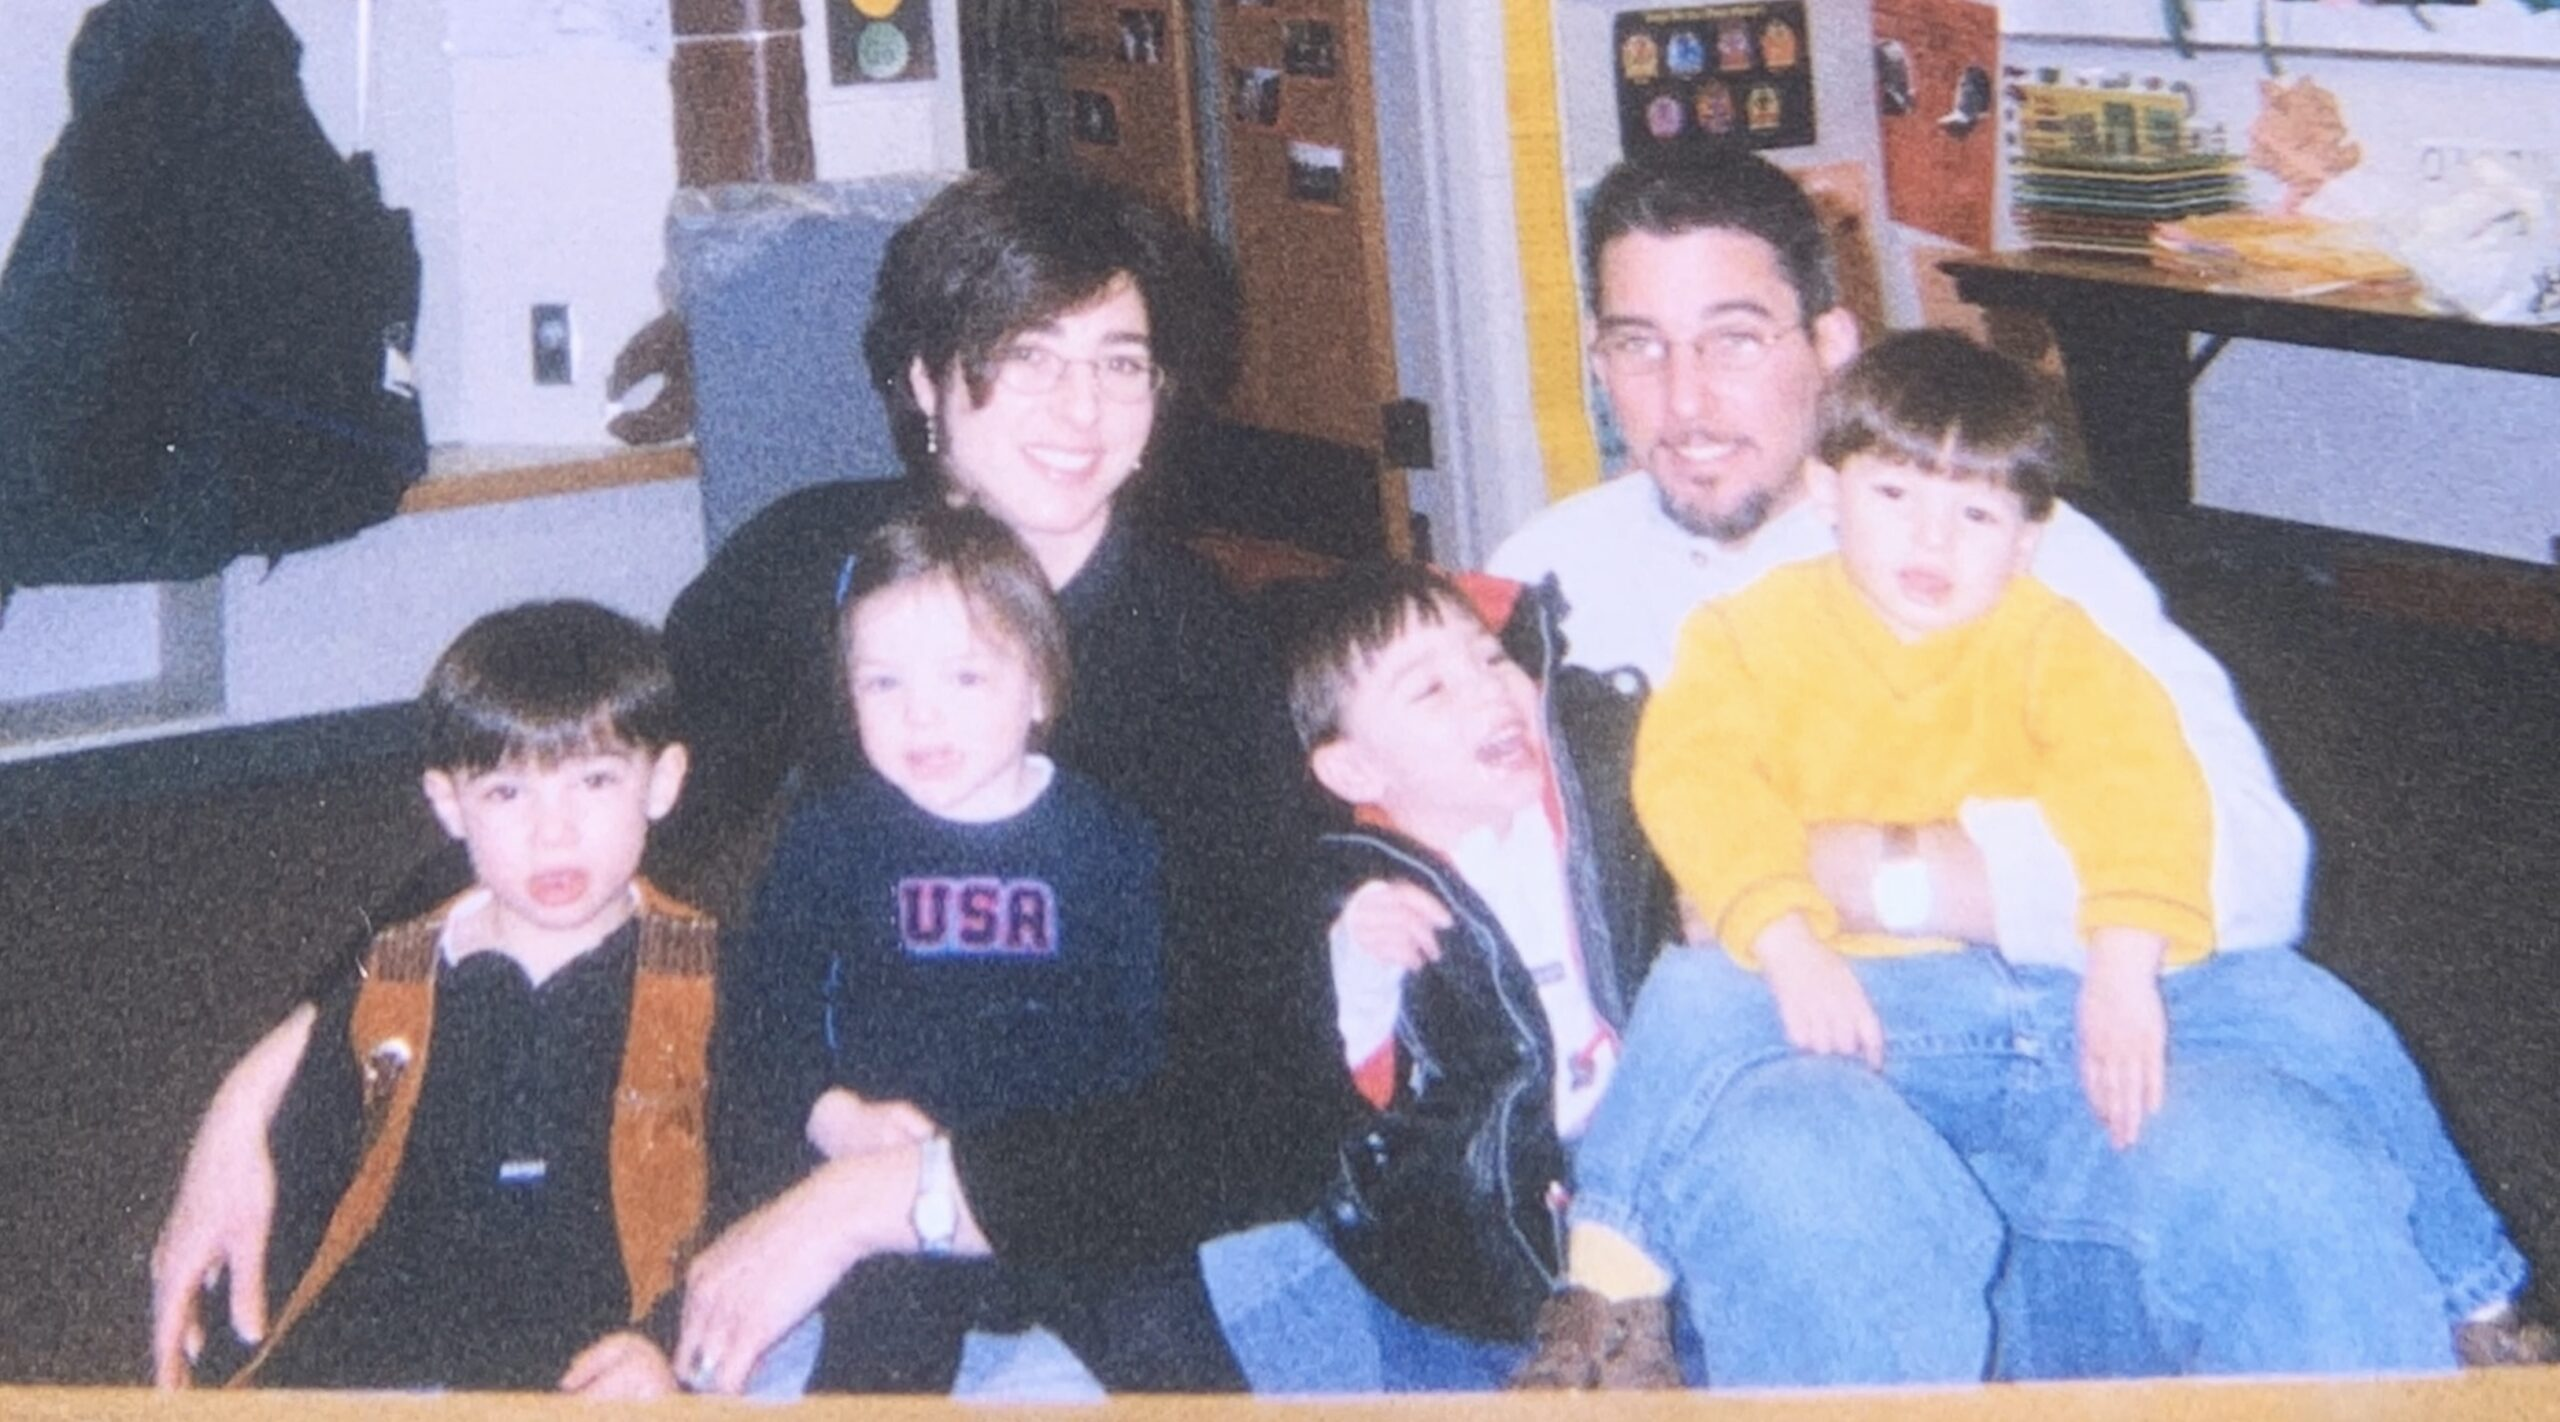 A grainy photo of two parents with four small children in their laps